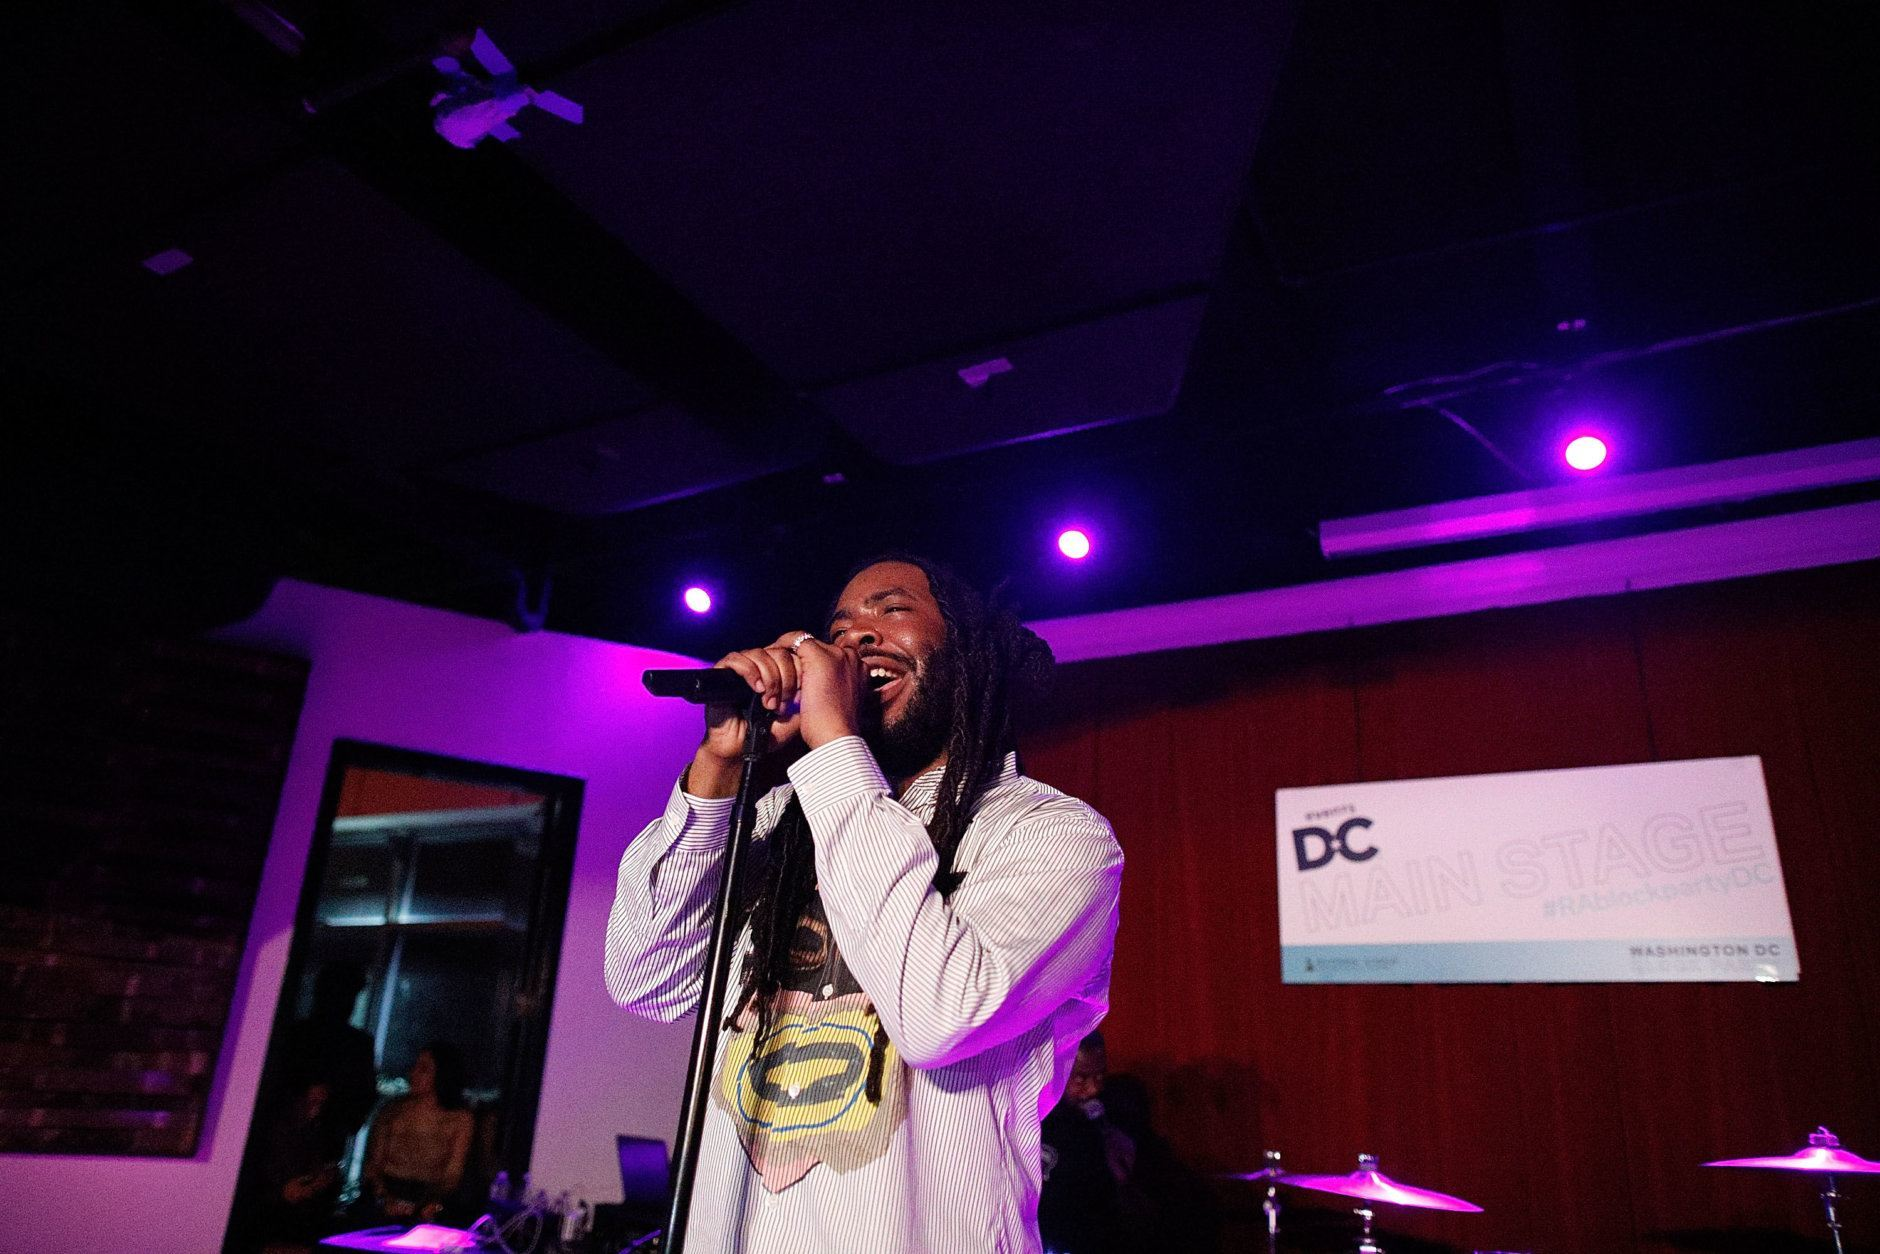 Rapper D.R.A.M. performs at the WDC Chapter Block Party at City Winery DC on May 10, 2019 in Washington, DC. (Courtesy of The Recording Academy/Brian Stukes)